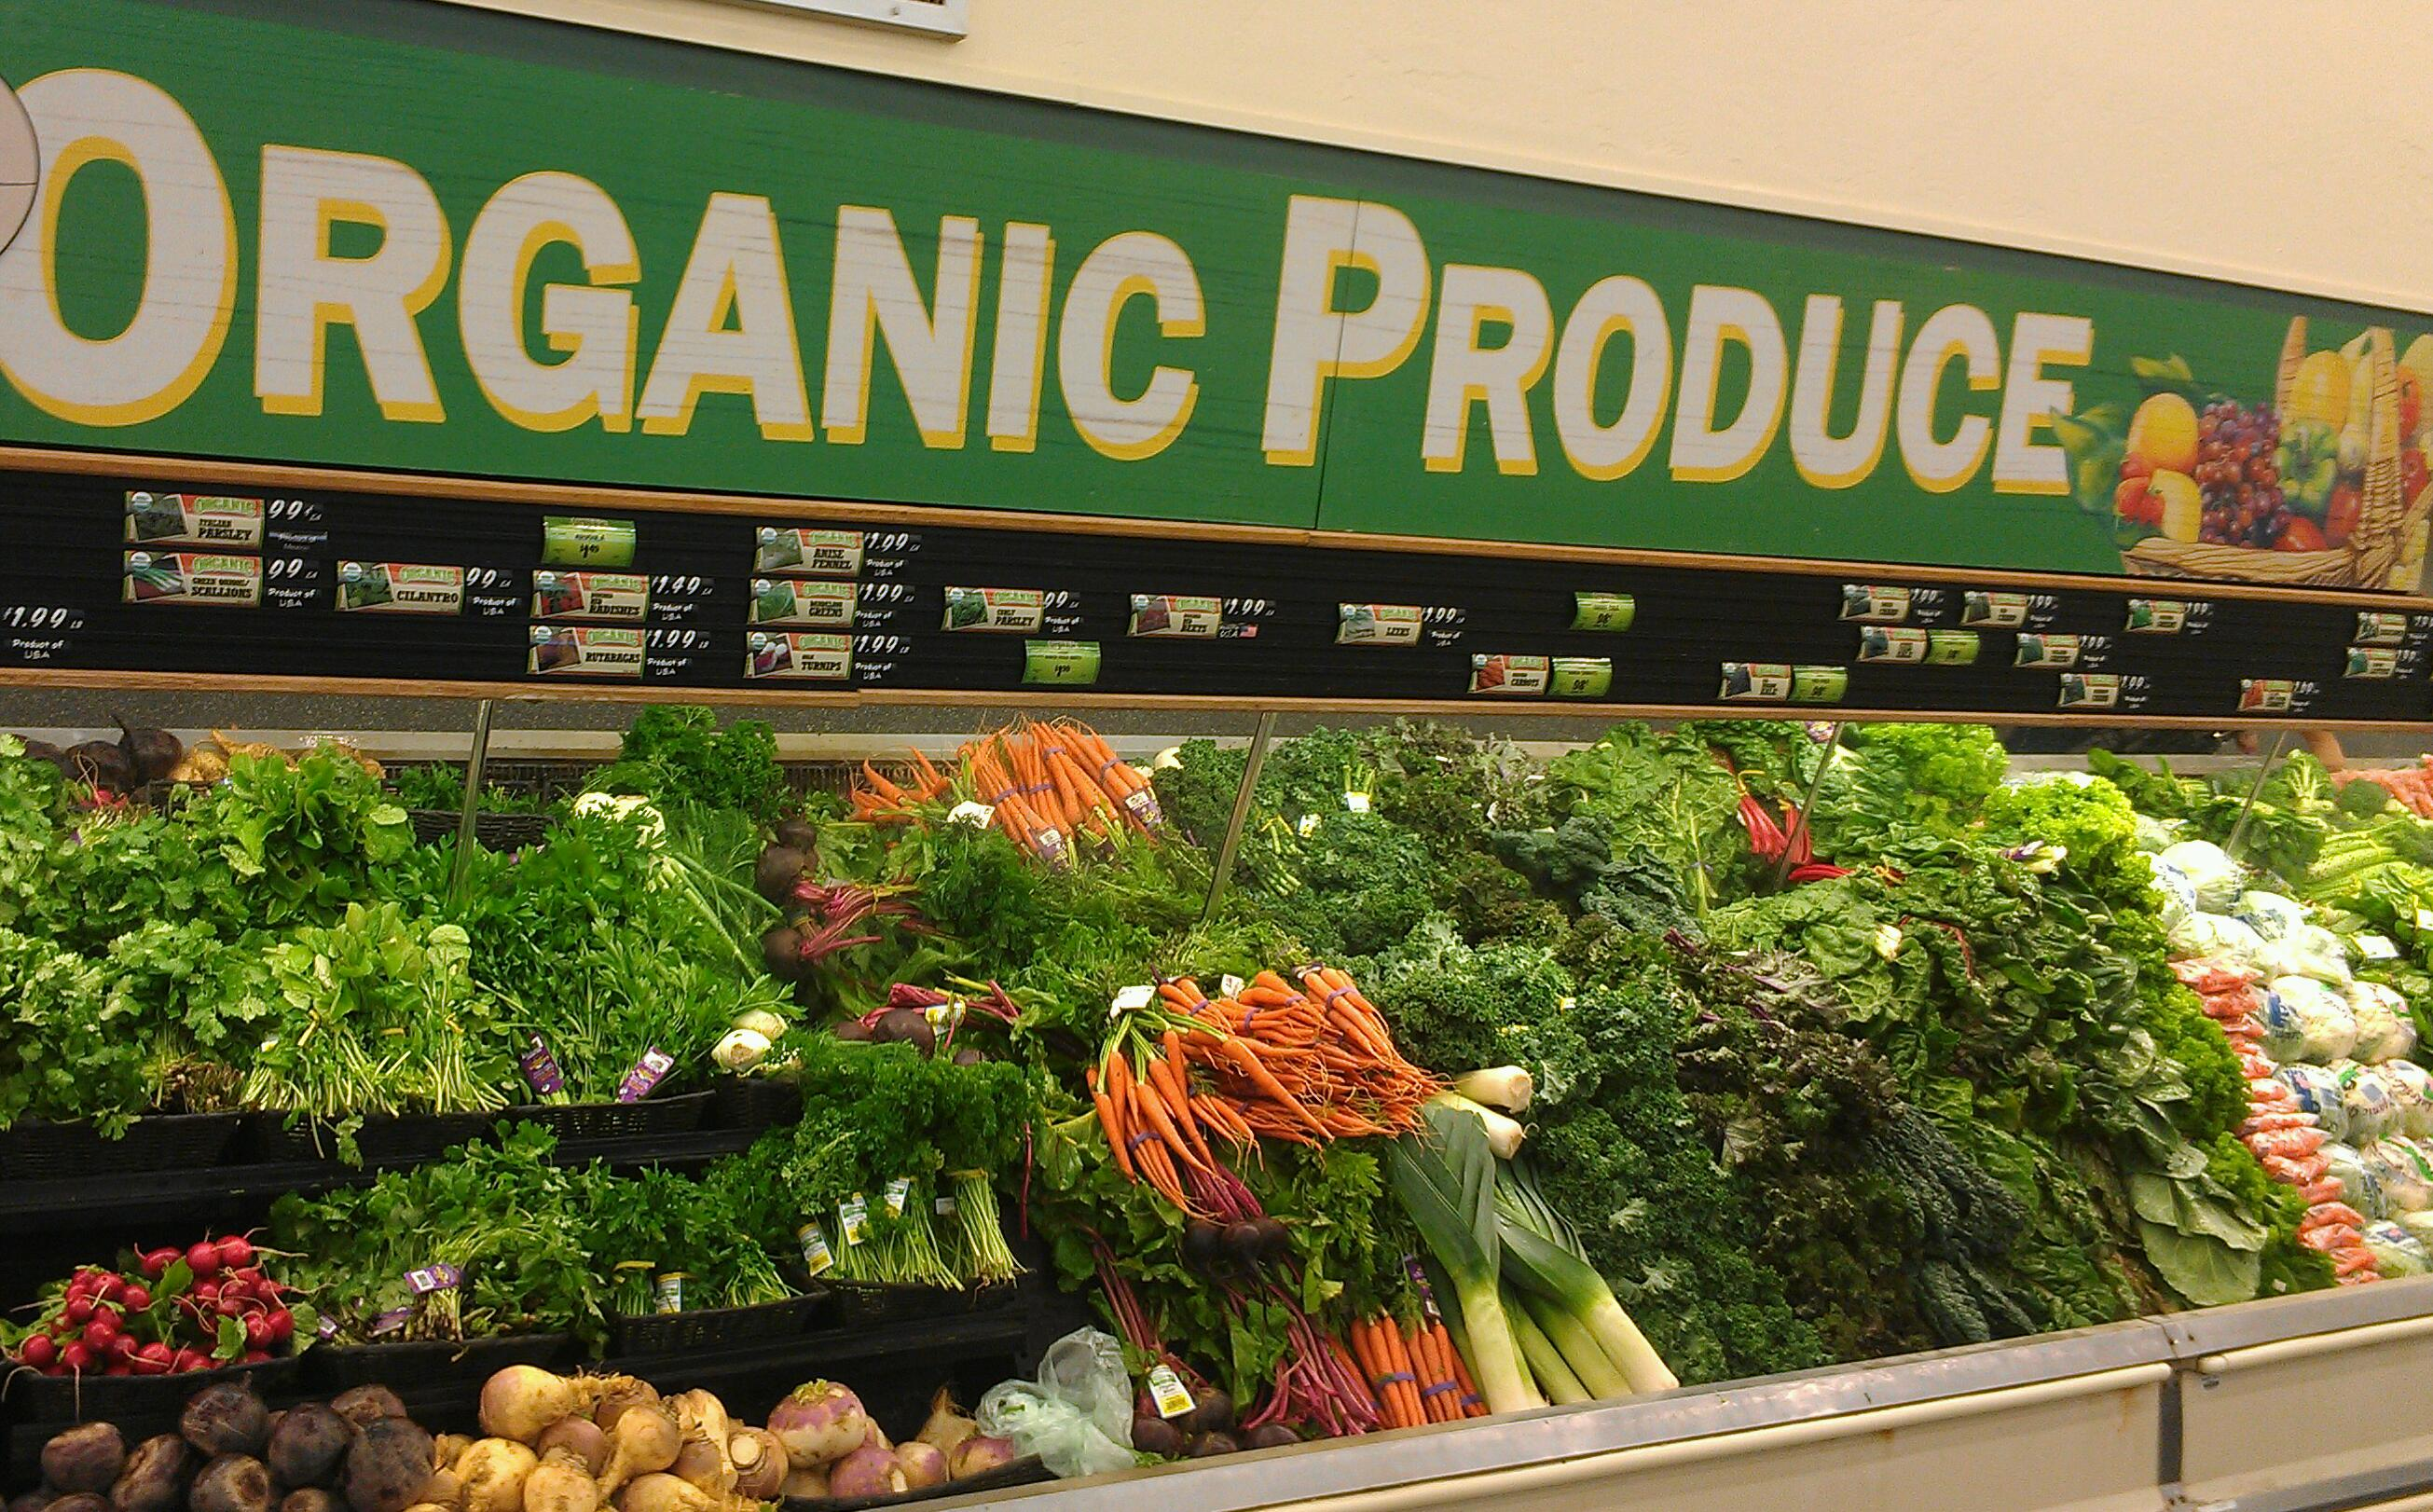 Organic Foods Have More Antioxidants and Fewer Pesticides, Study Shows